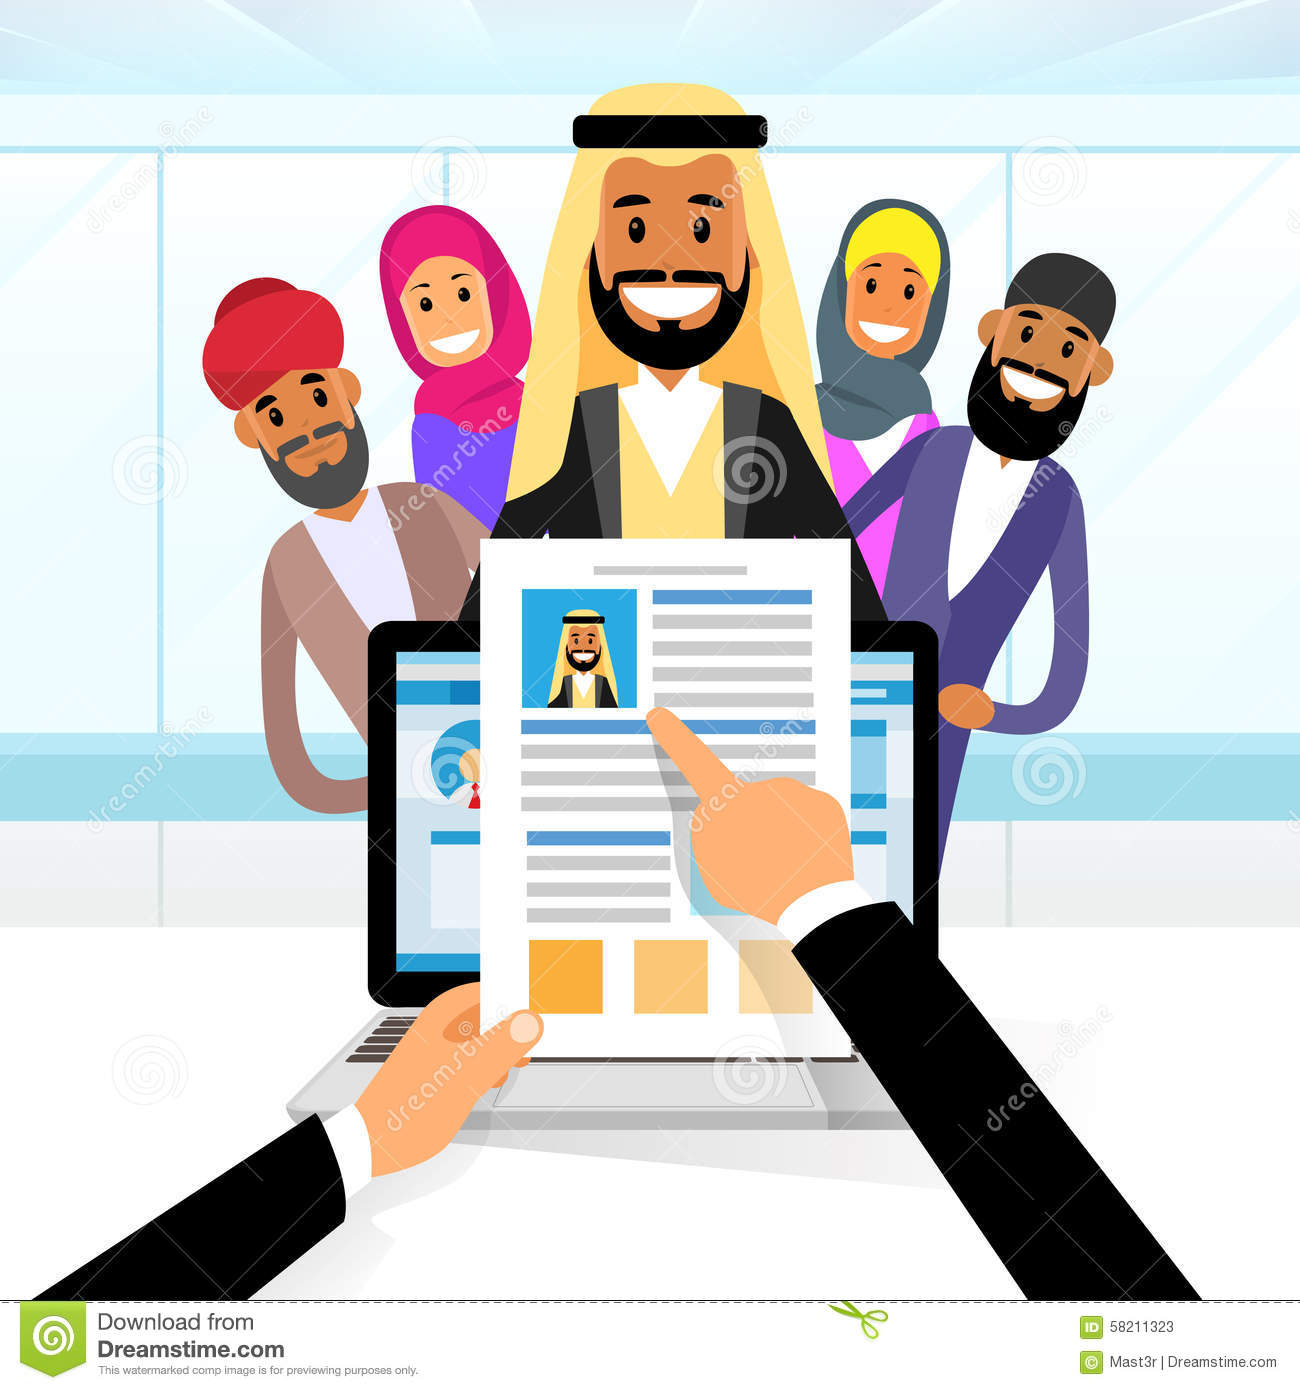 Candidate clipart clipart download Recruitment Candidate Job | Clipart Panda - Free Clipart Images clipart download